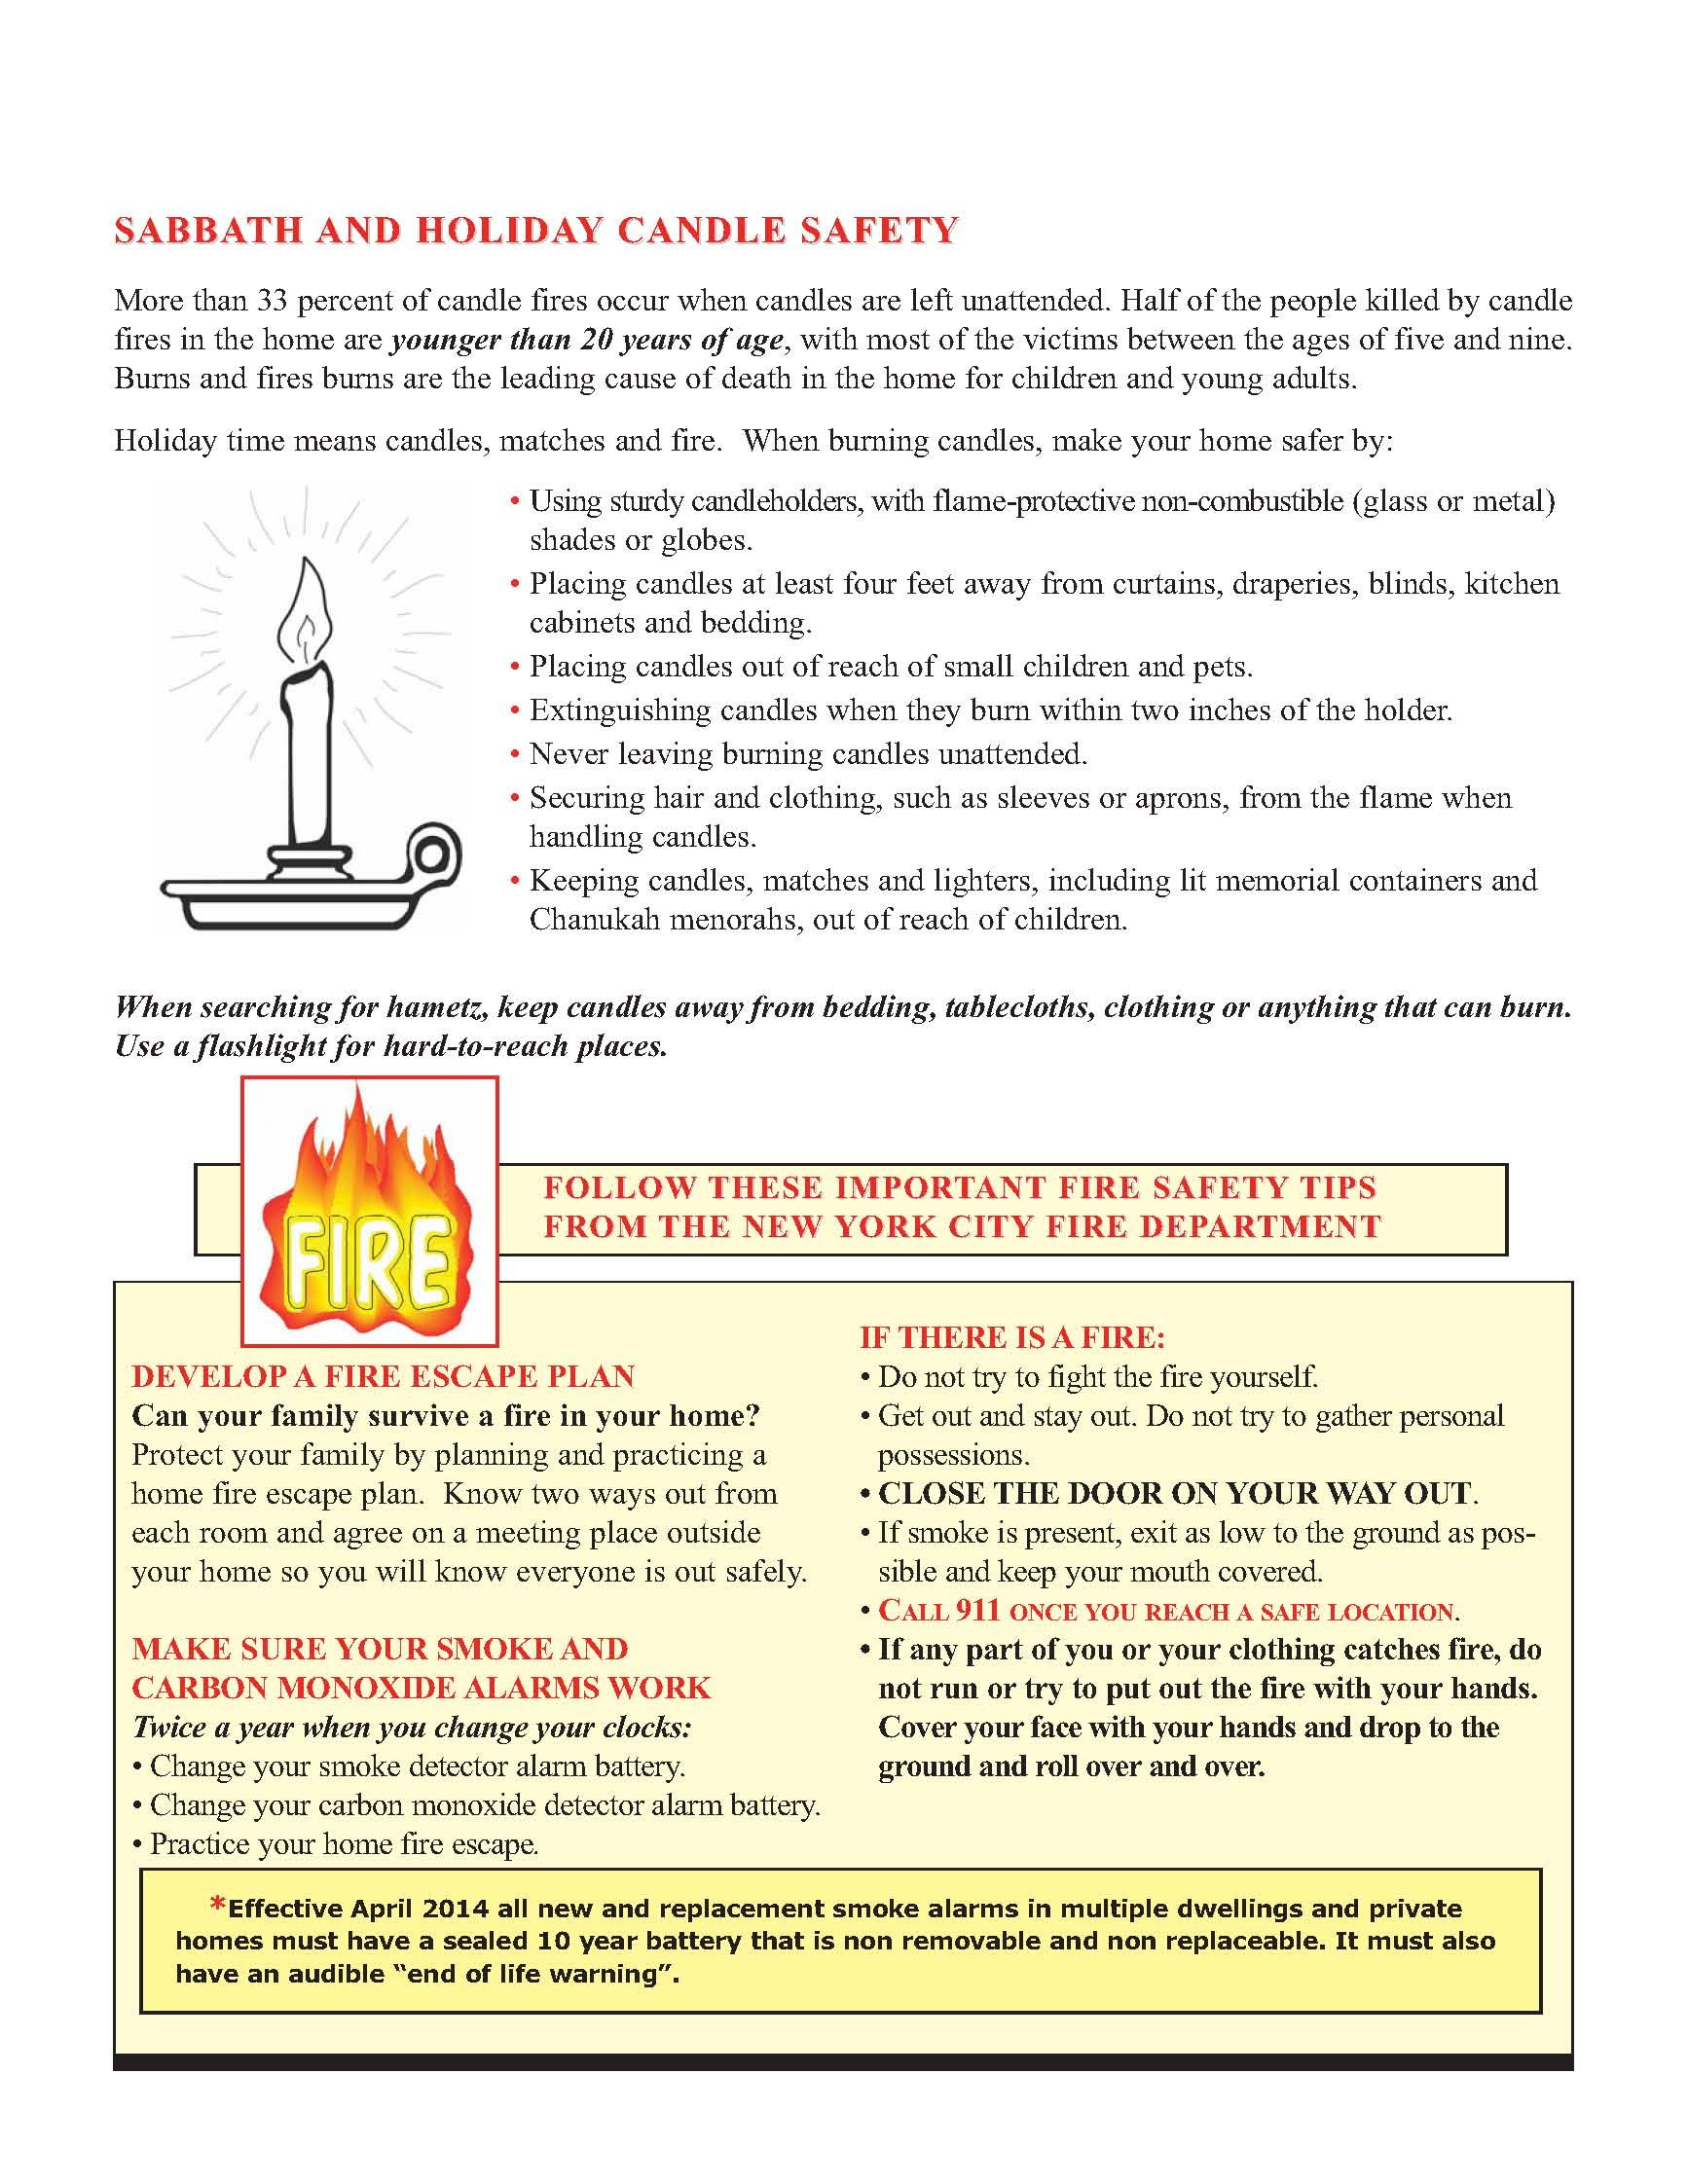 FDNY 12_fire_safety_for_jewish_observance_yiddish_Page_2 Design Inspirations